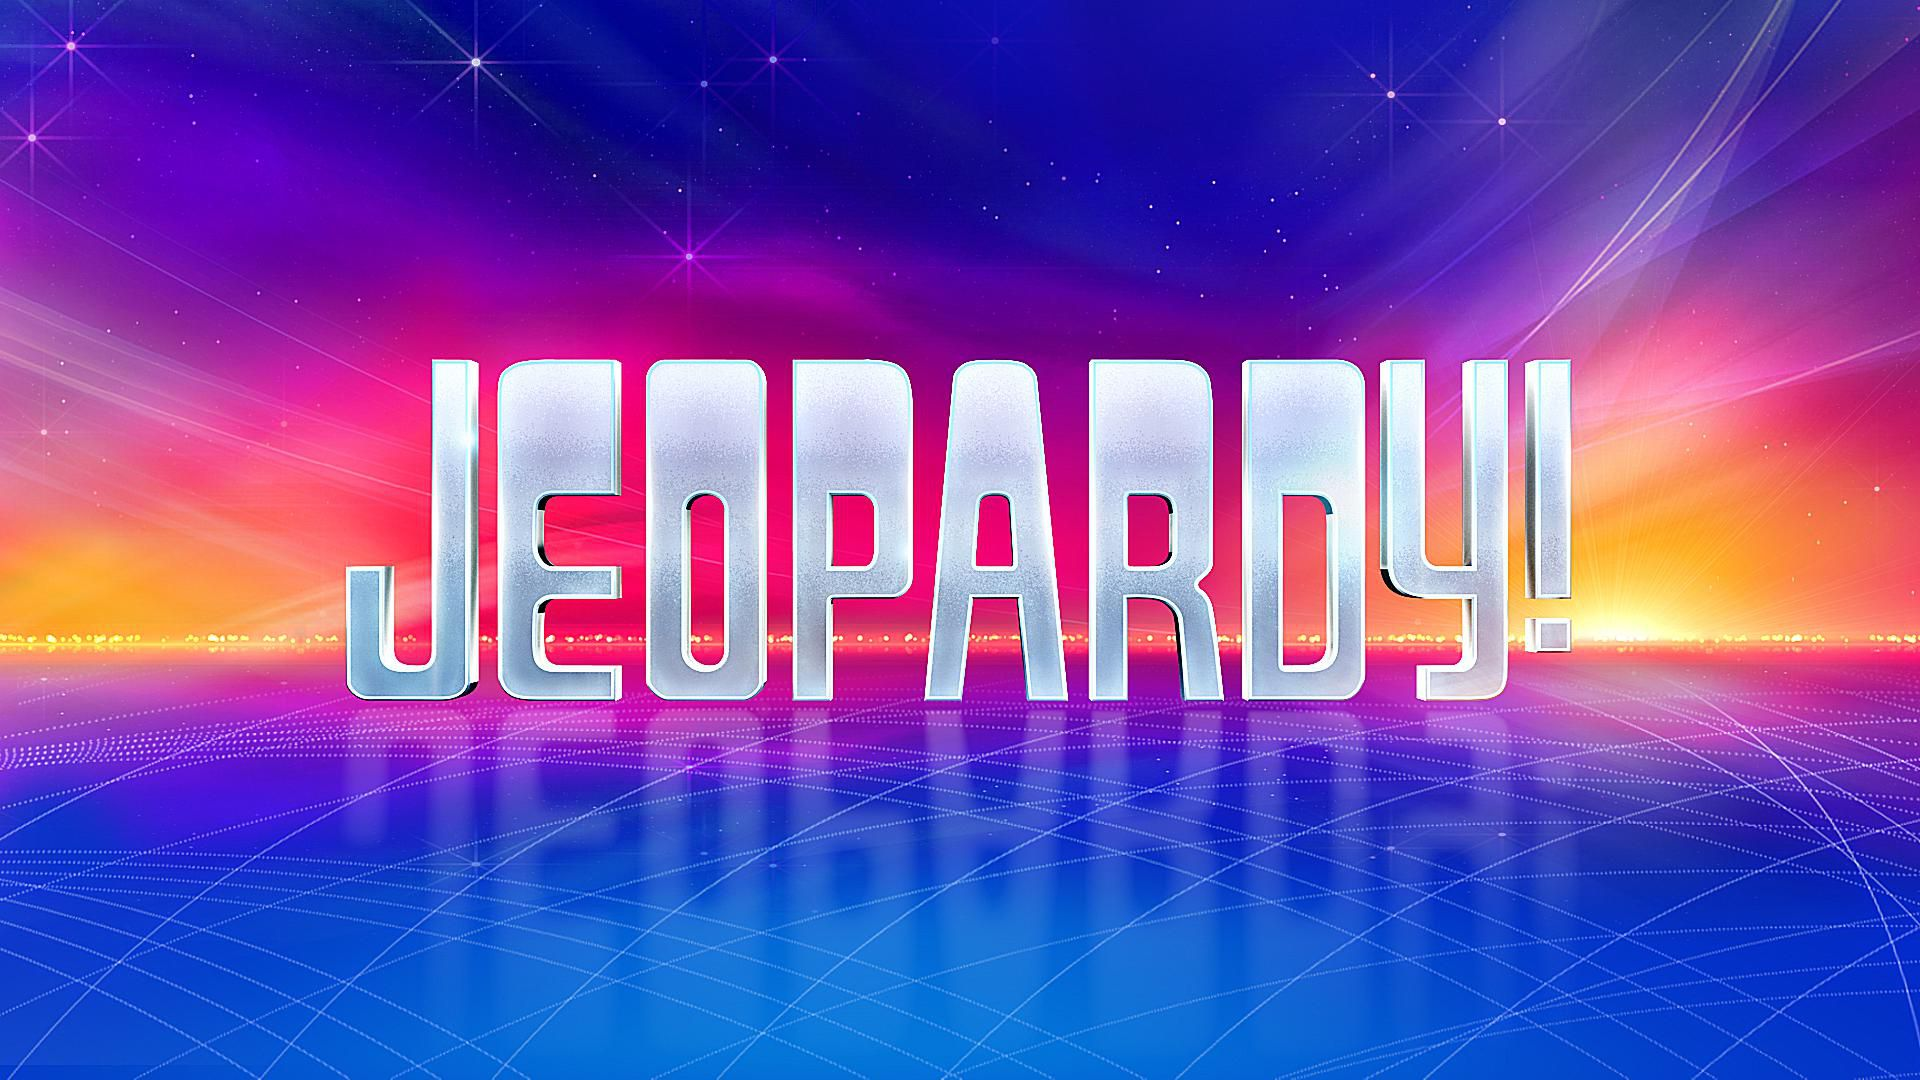 'Jeopardy!': A Brief History